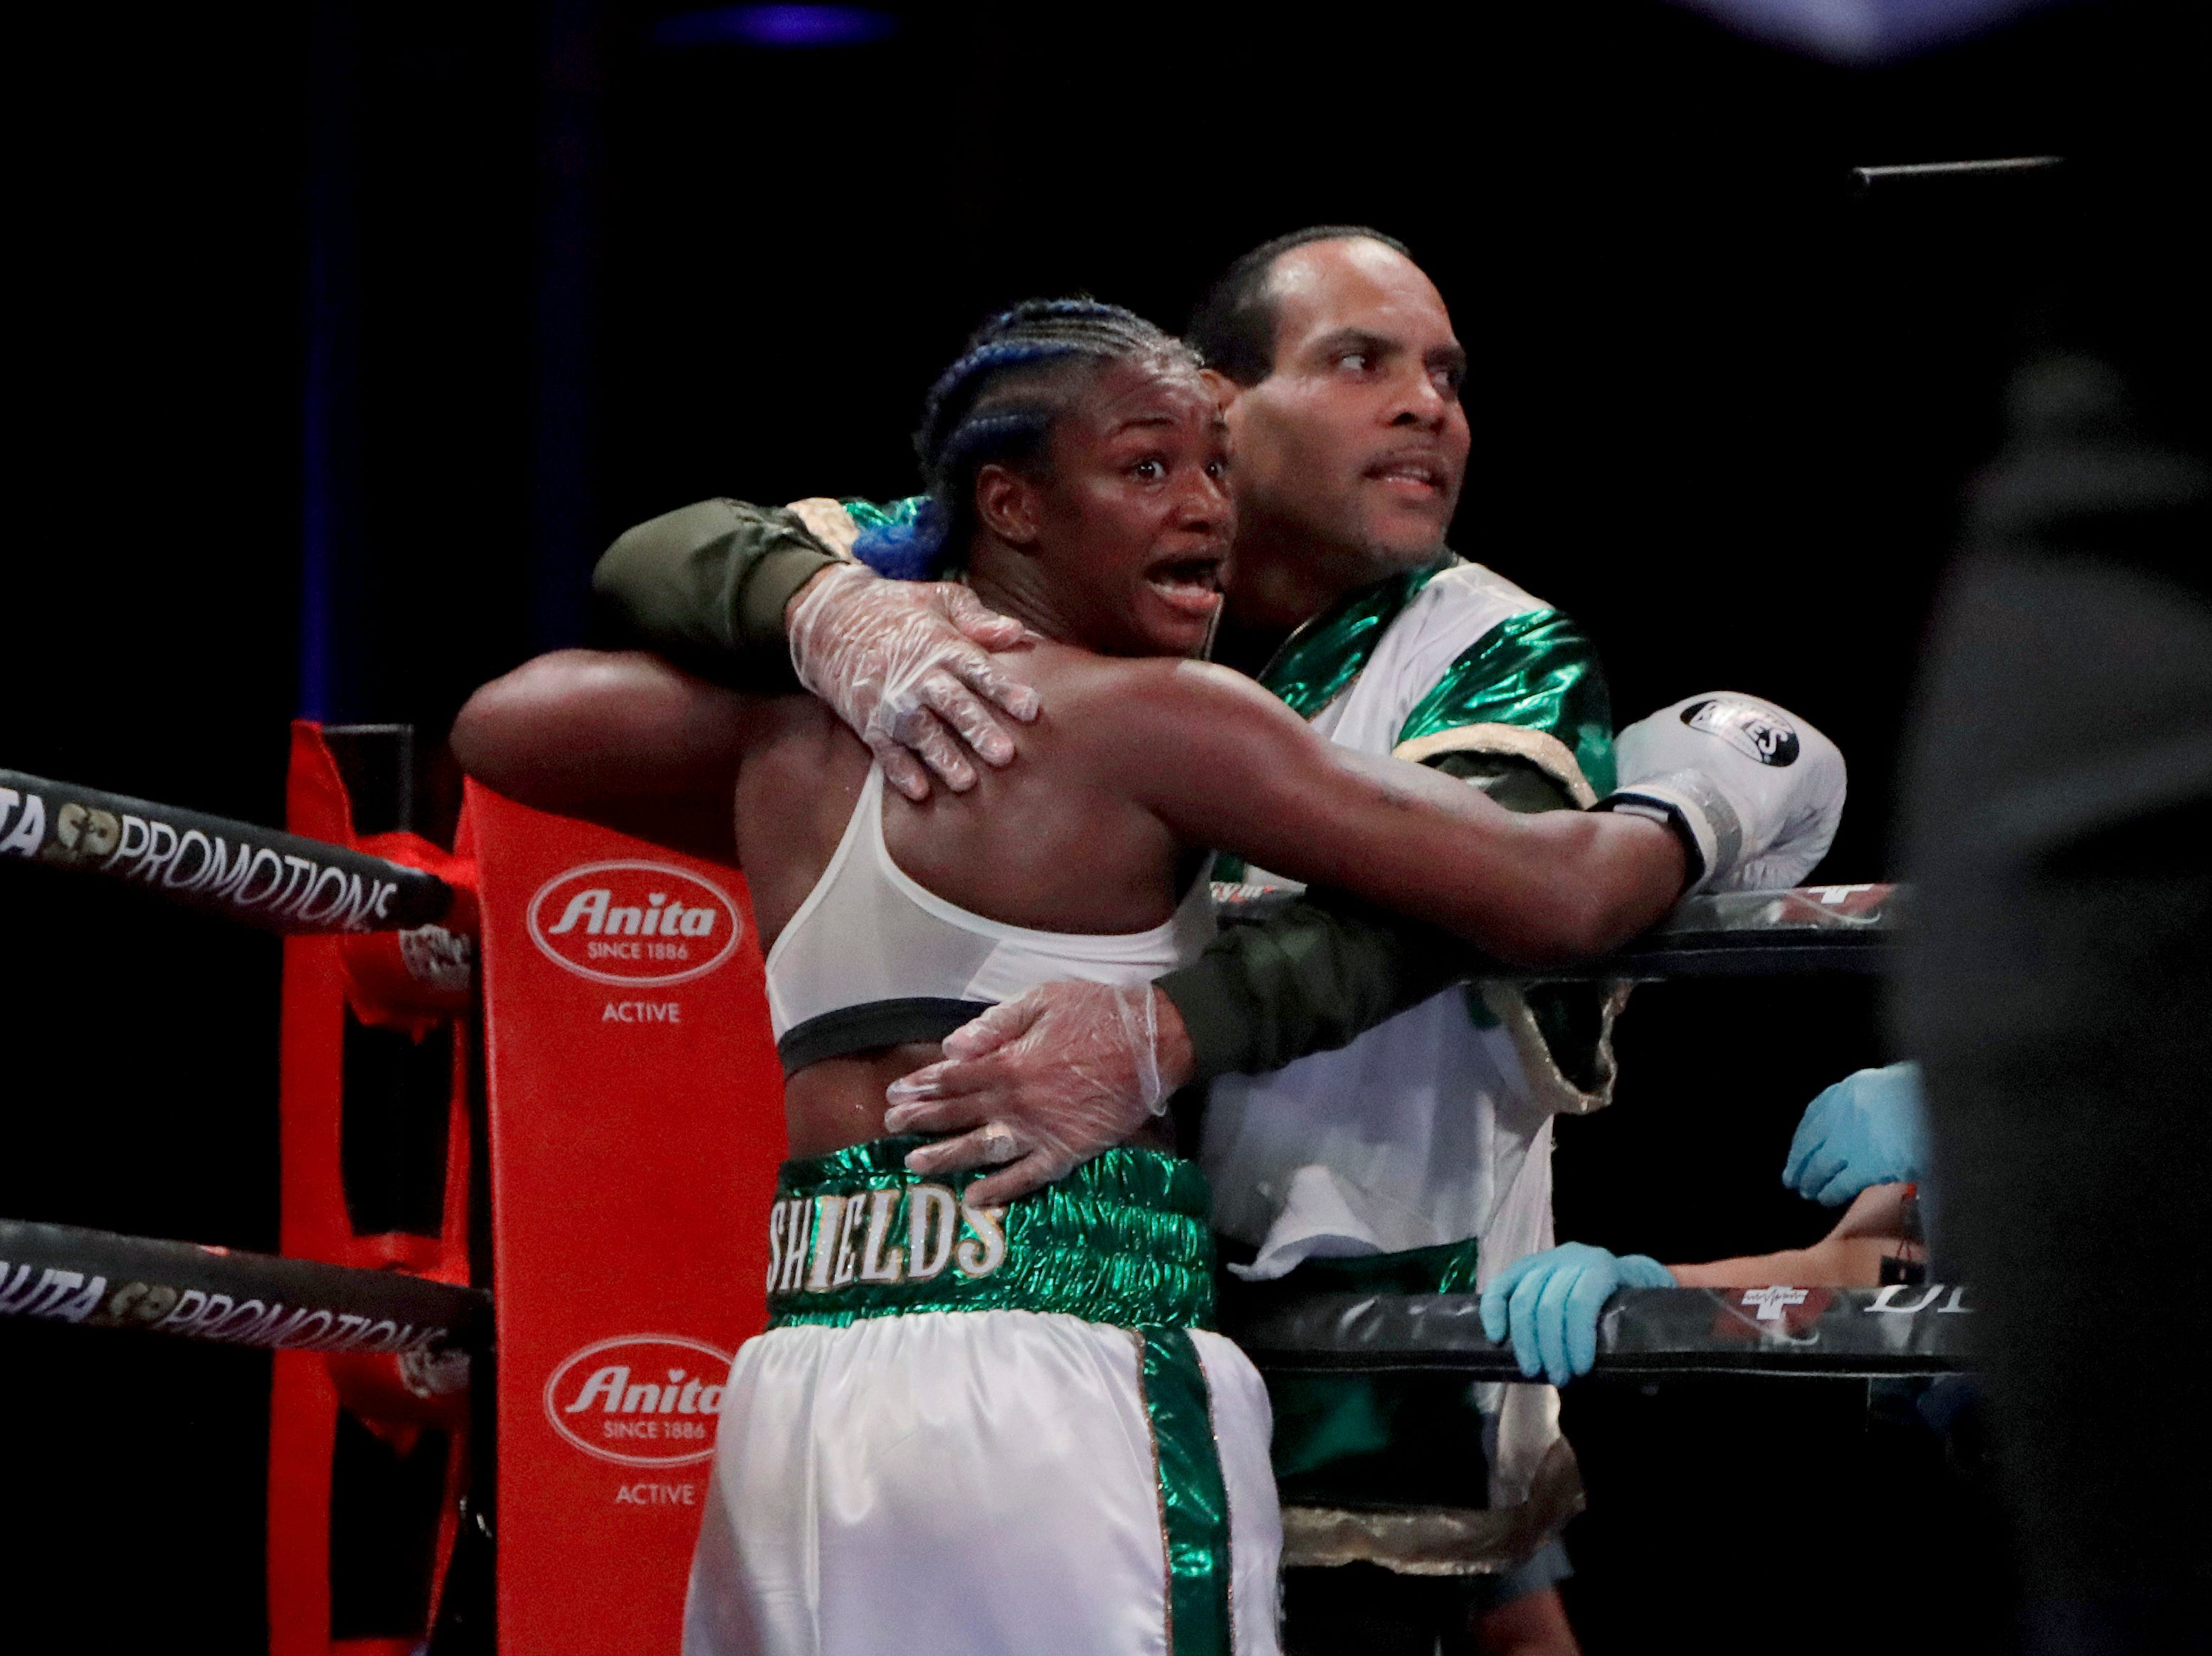 Claressa Shields, left, hugs a member of her team at the end of the eighth round against Christina Hammer during the women's middleweight title boxing bout Saturday, April 13, 2019, in Atlantic City, N.J. Shields, who won by unanimous decision, believed she had seen a white towel thrown on the ring and thought she had won. Shields went on to win by unanimous decision.